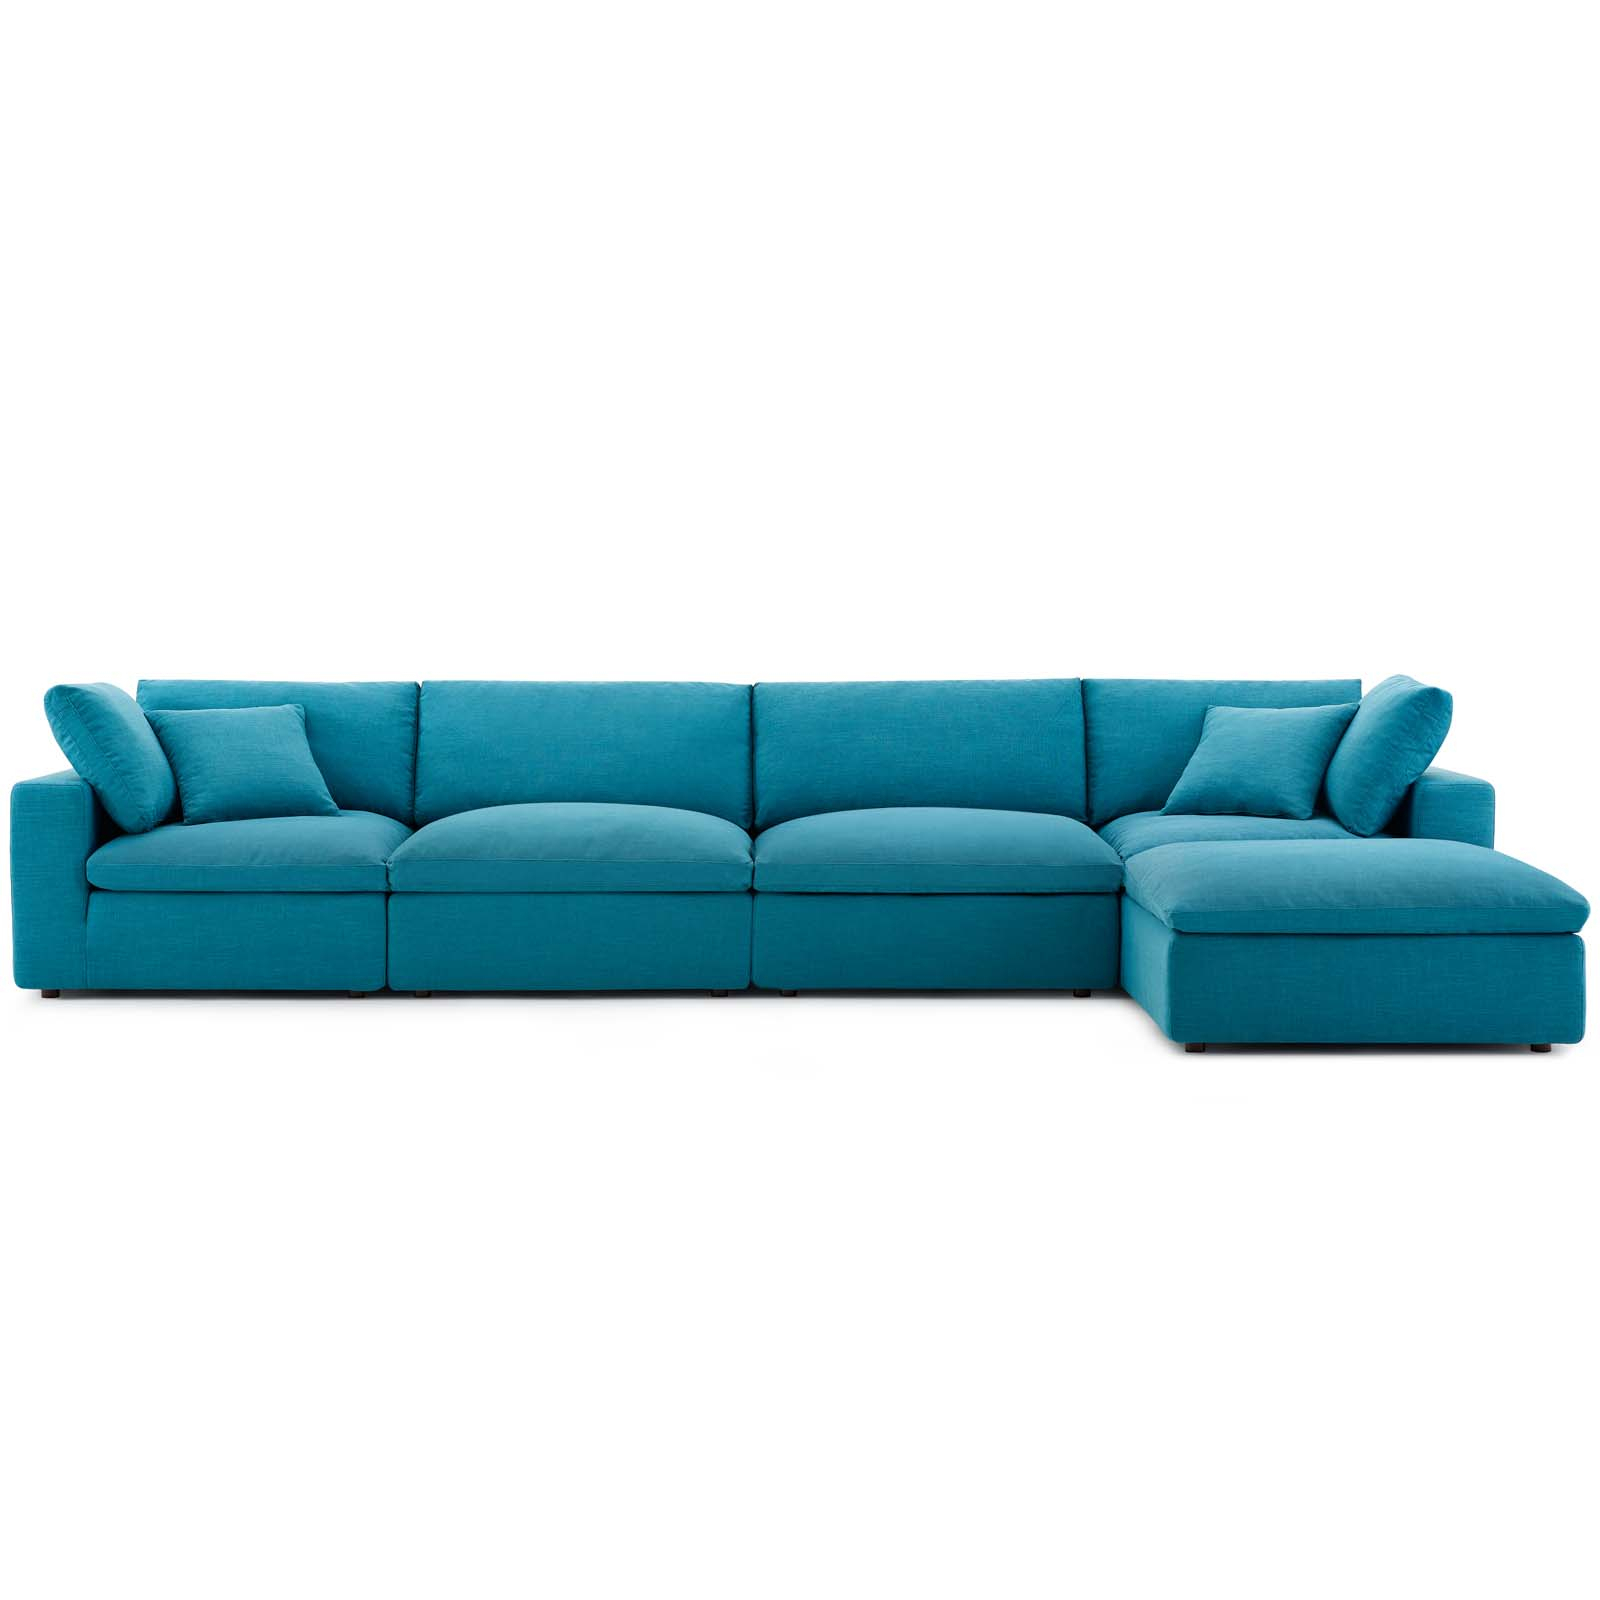 Commix Down Filled Overstuffed 5 Piece Sectional Sofa Set Teal For Down Filled Sofas (View 1 of 15)